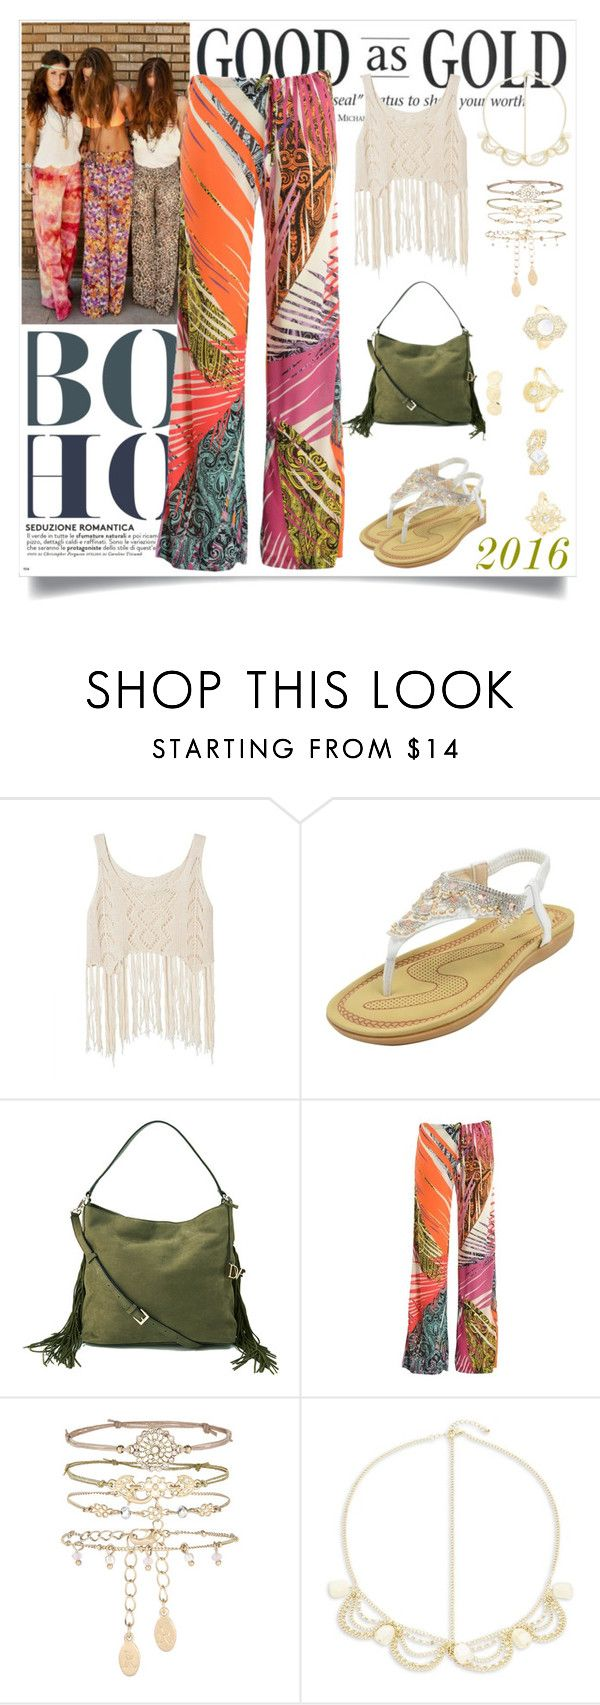 BoHo by marinaova on Polyvore featuring Etro, Diane Von Furstenberg, Charlotte Russe, Accessorize, Robert Rose and boho